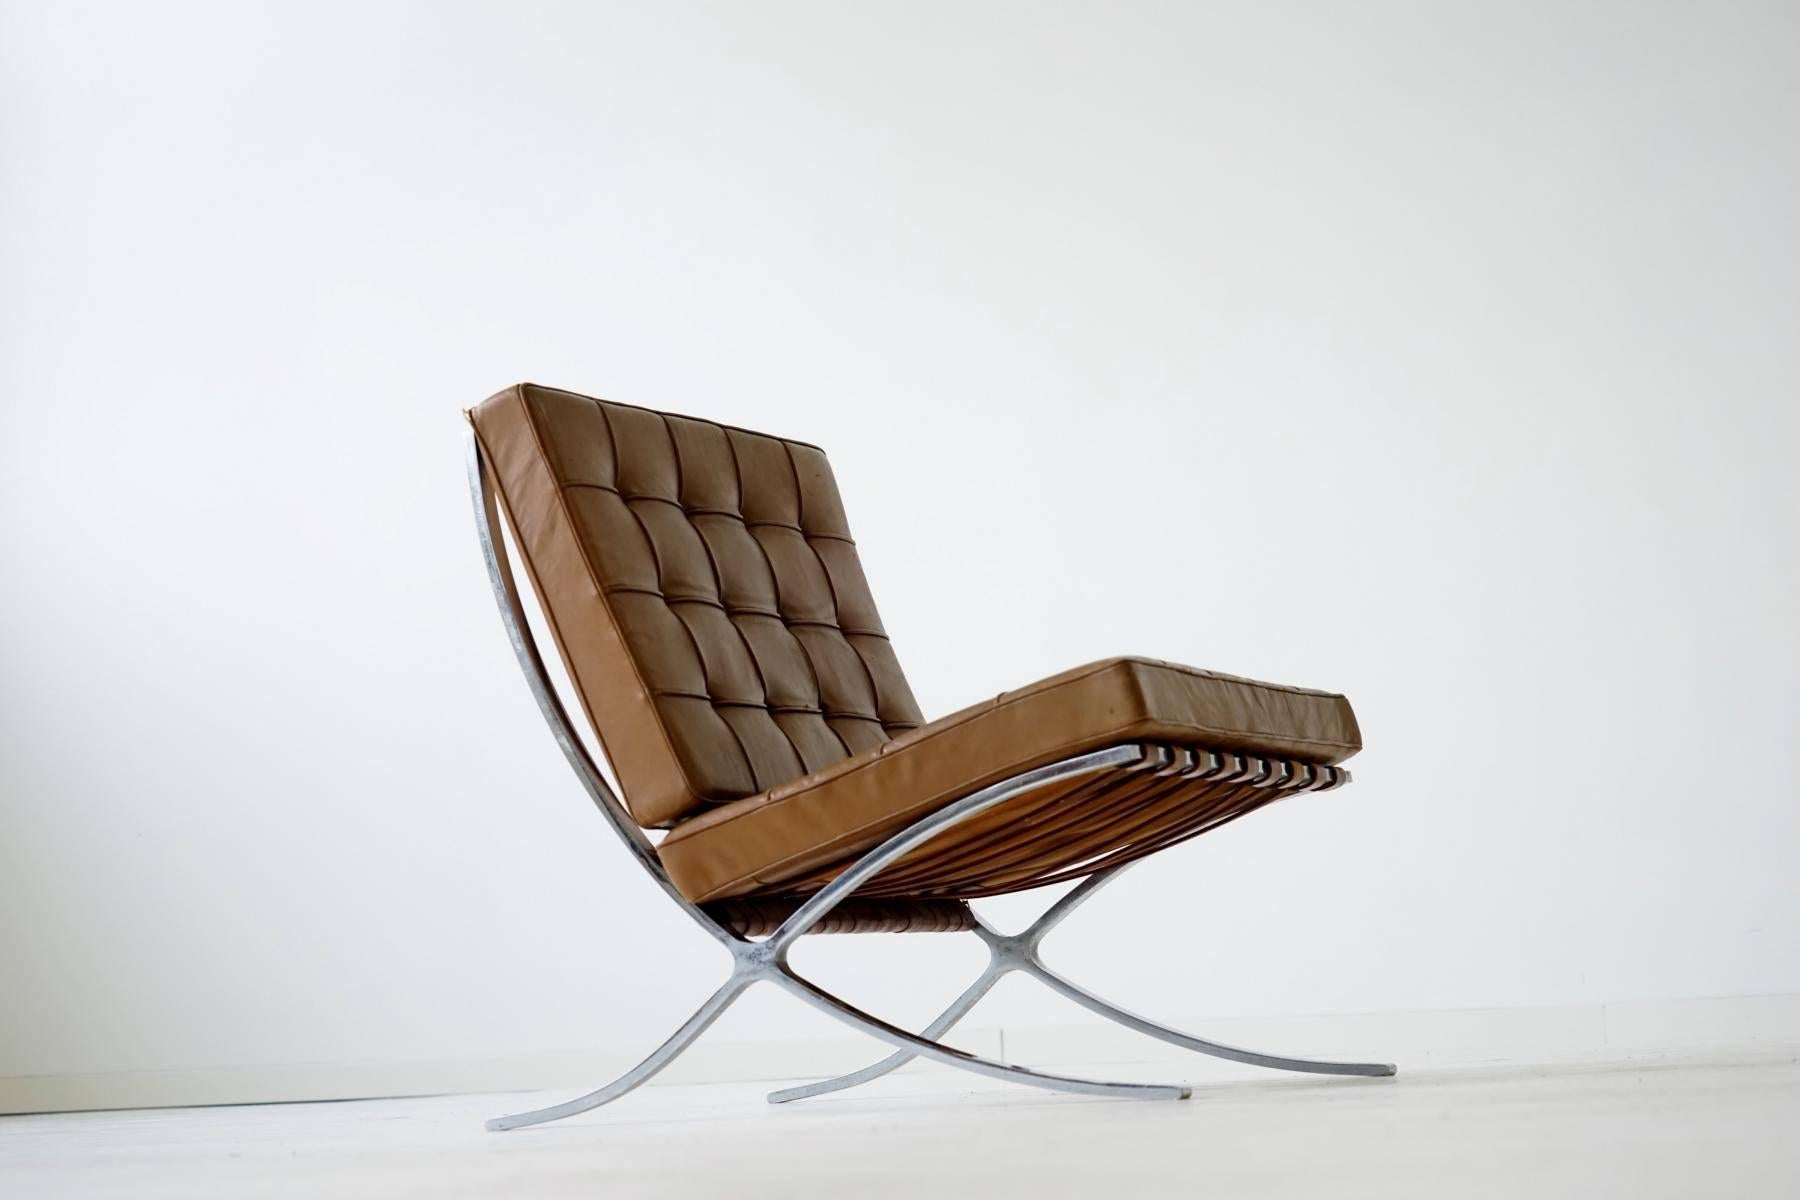 Lieblich Early Barcelona Lounge Chair By Mies Van Der Rohe For Knoll International,  1960s Designed By